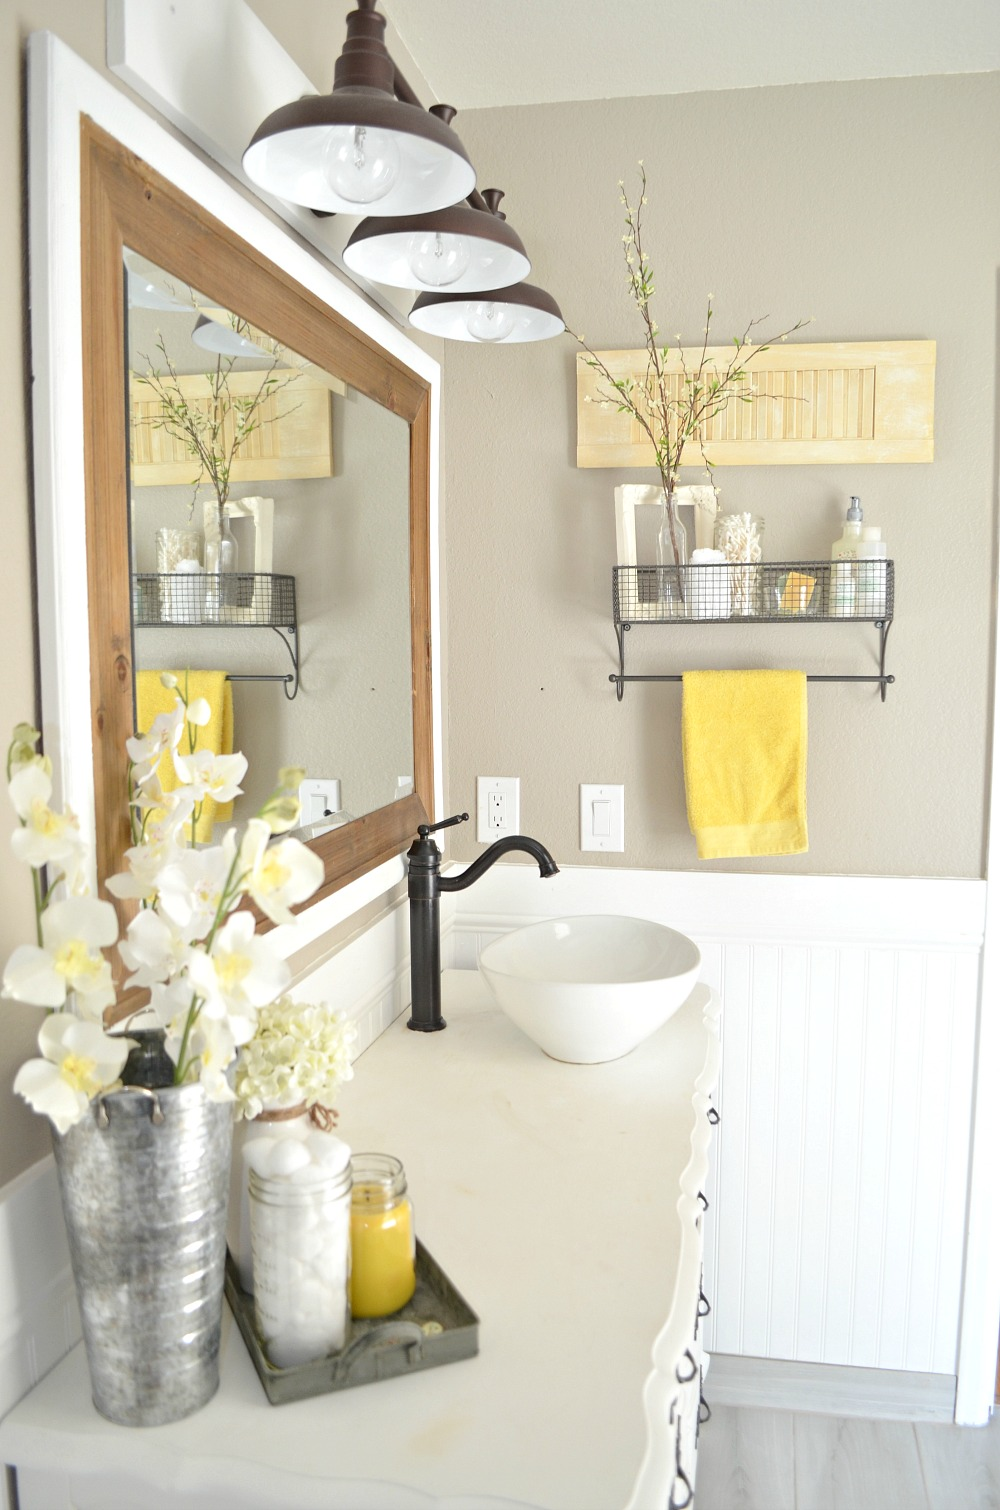 Images Of Bathroom Wall Decor : How to easily mix vintage and modern decor little